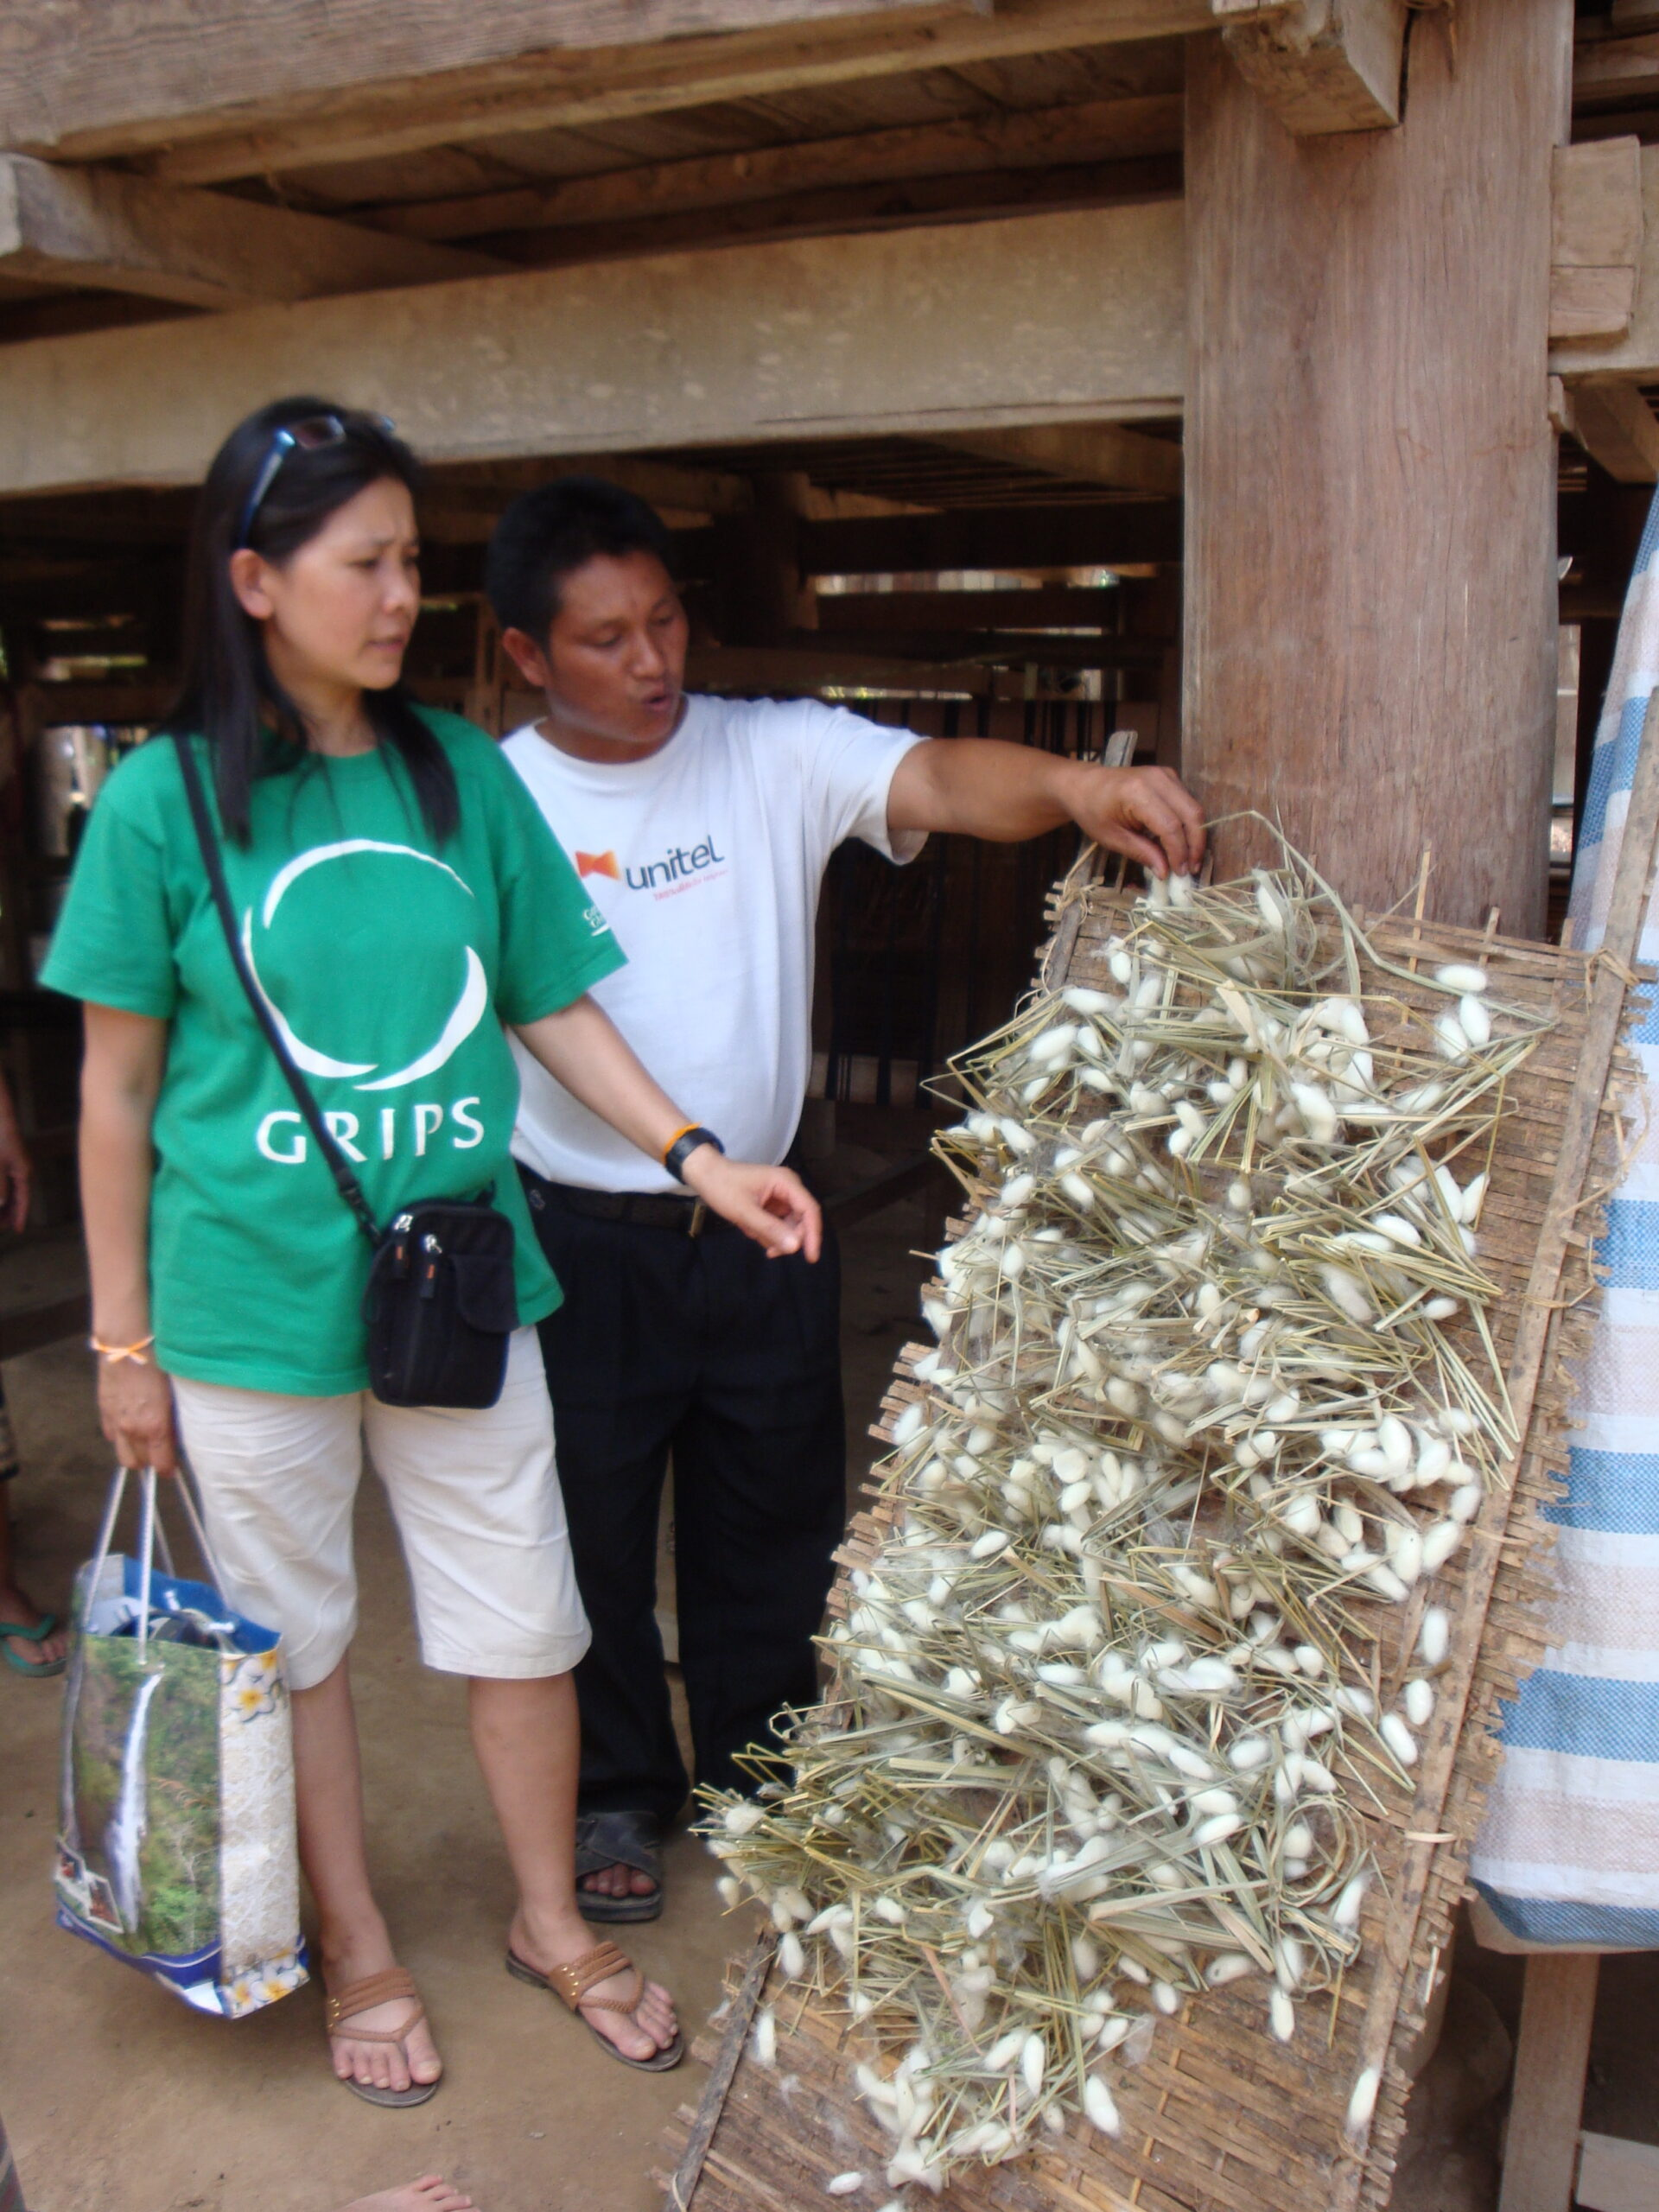 Our friend and translator Mai (in the green) and a seri-culture expert looking at the silkworms that are puinned to a board.  The worms are in the stage where they are actually making the precious silk.